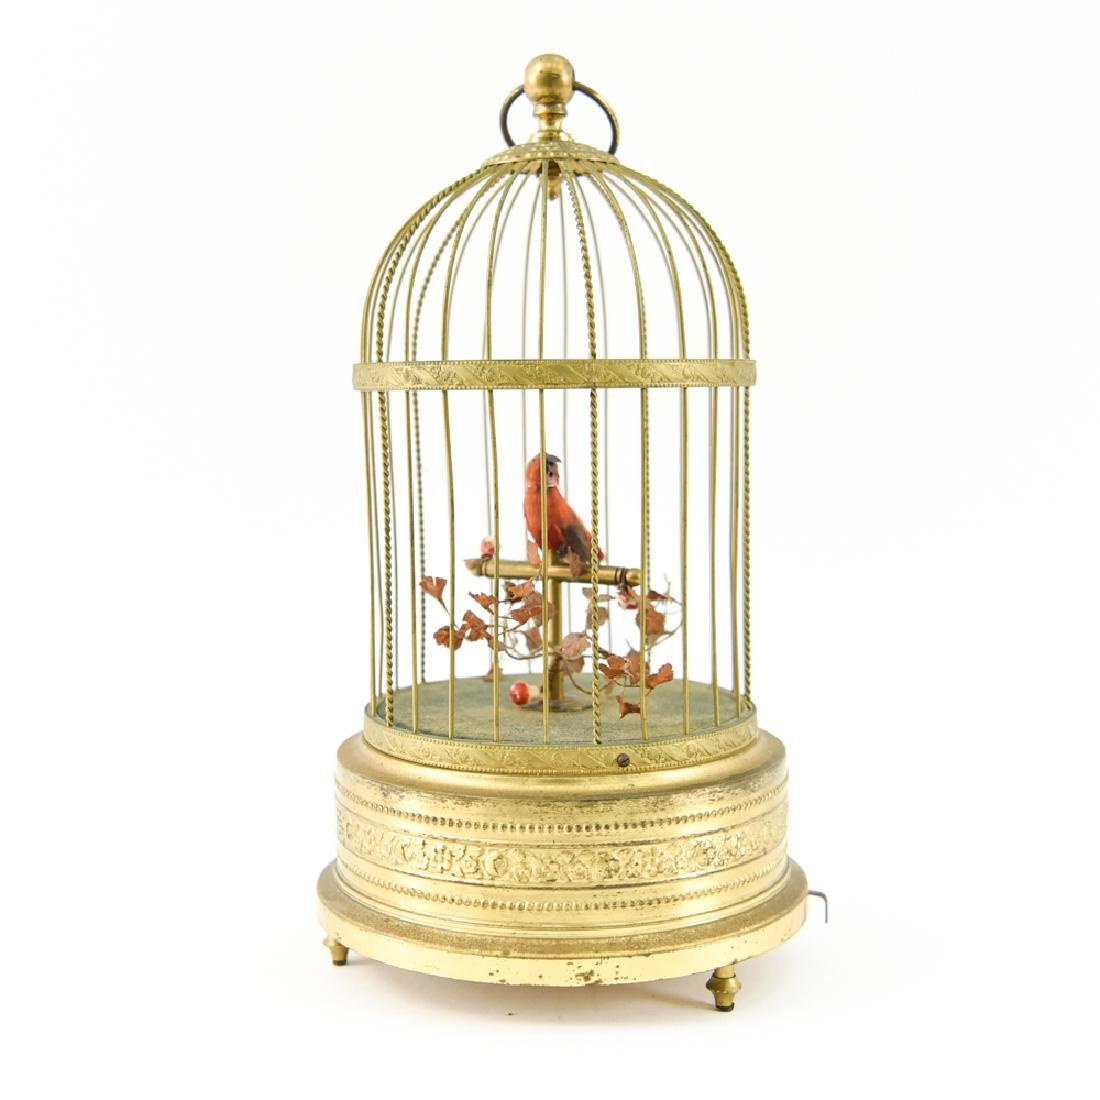 EARLY 20TH C. AUTOMATON MUSICAL BIRD IN CAGE